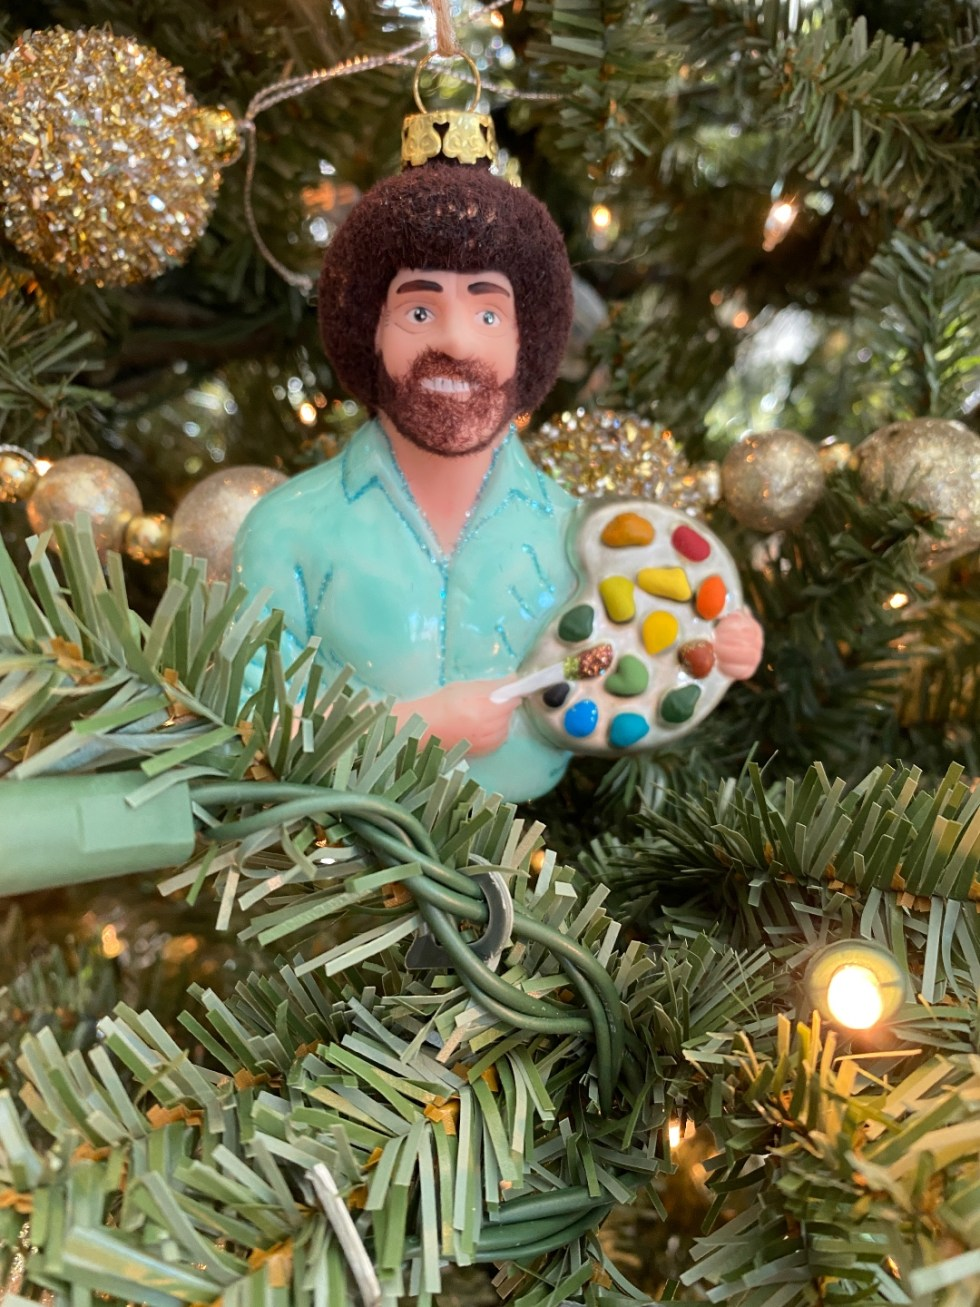 2020 Holidays: Unique Christmas Ornaments - I'm Fixin' To - @mbg0112 |Unique Christmas Ornaments by popular NC life and style blog, I'm Fixin' To: image of a Bob Ross ornament.